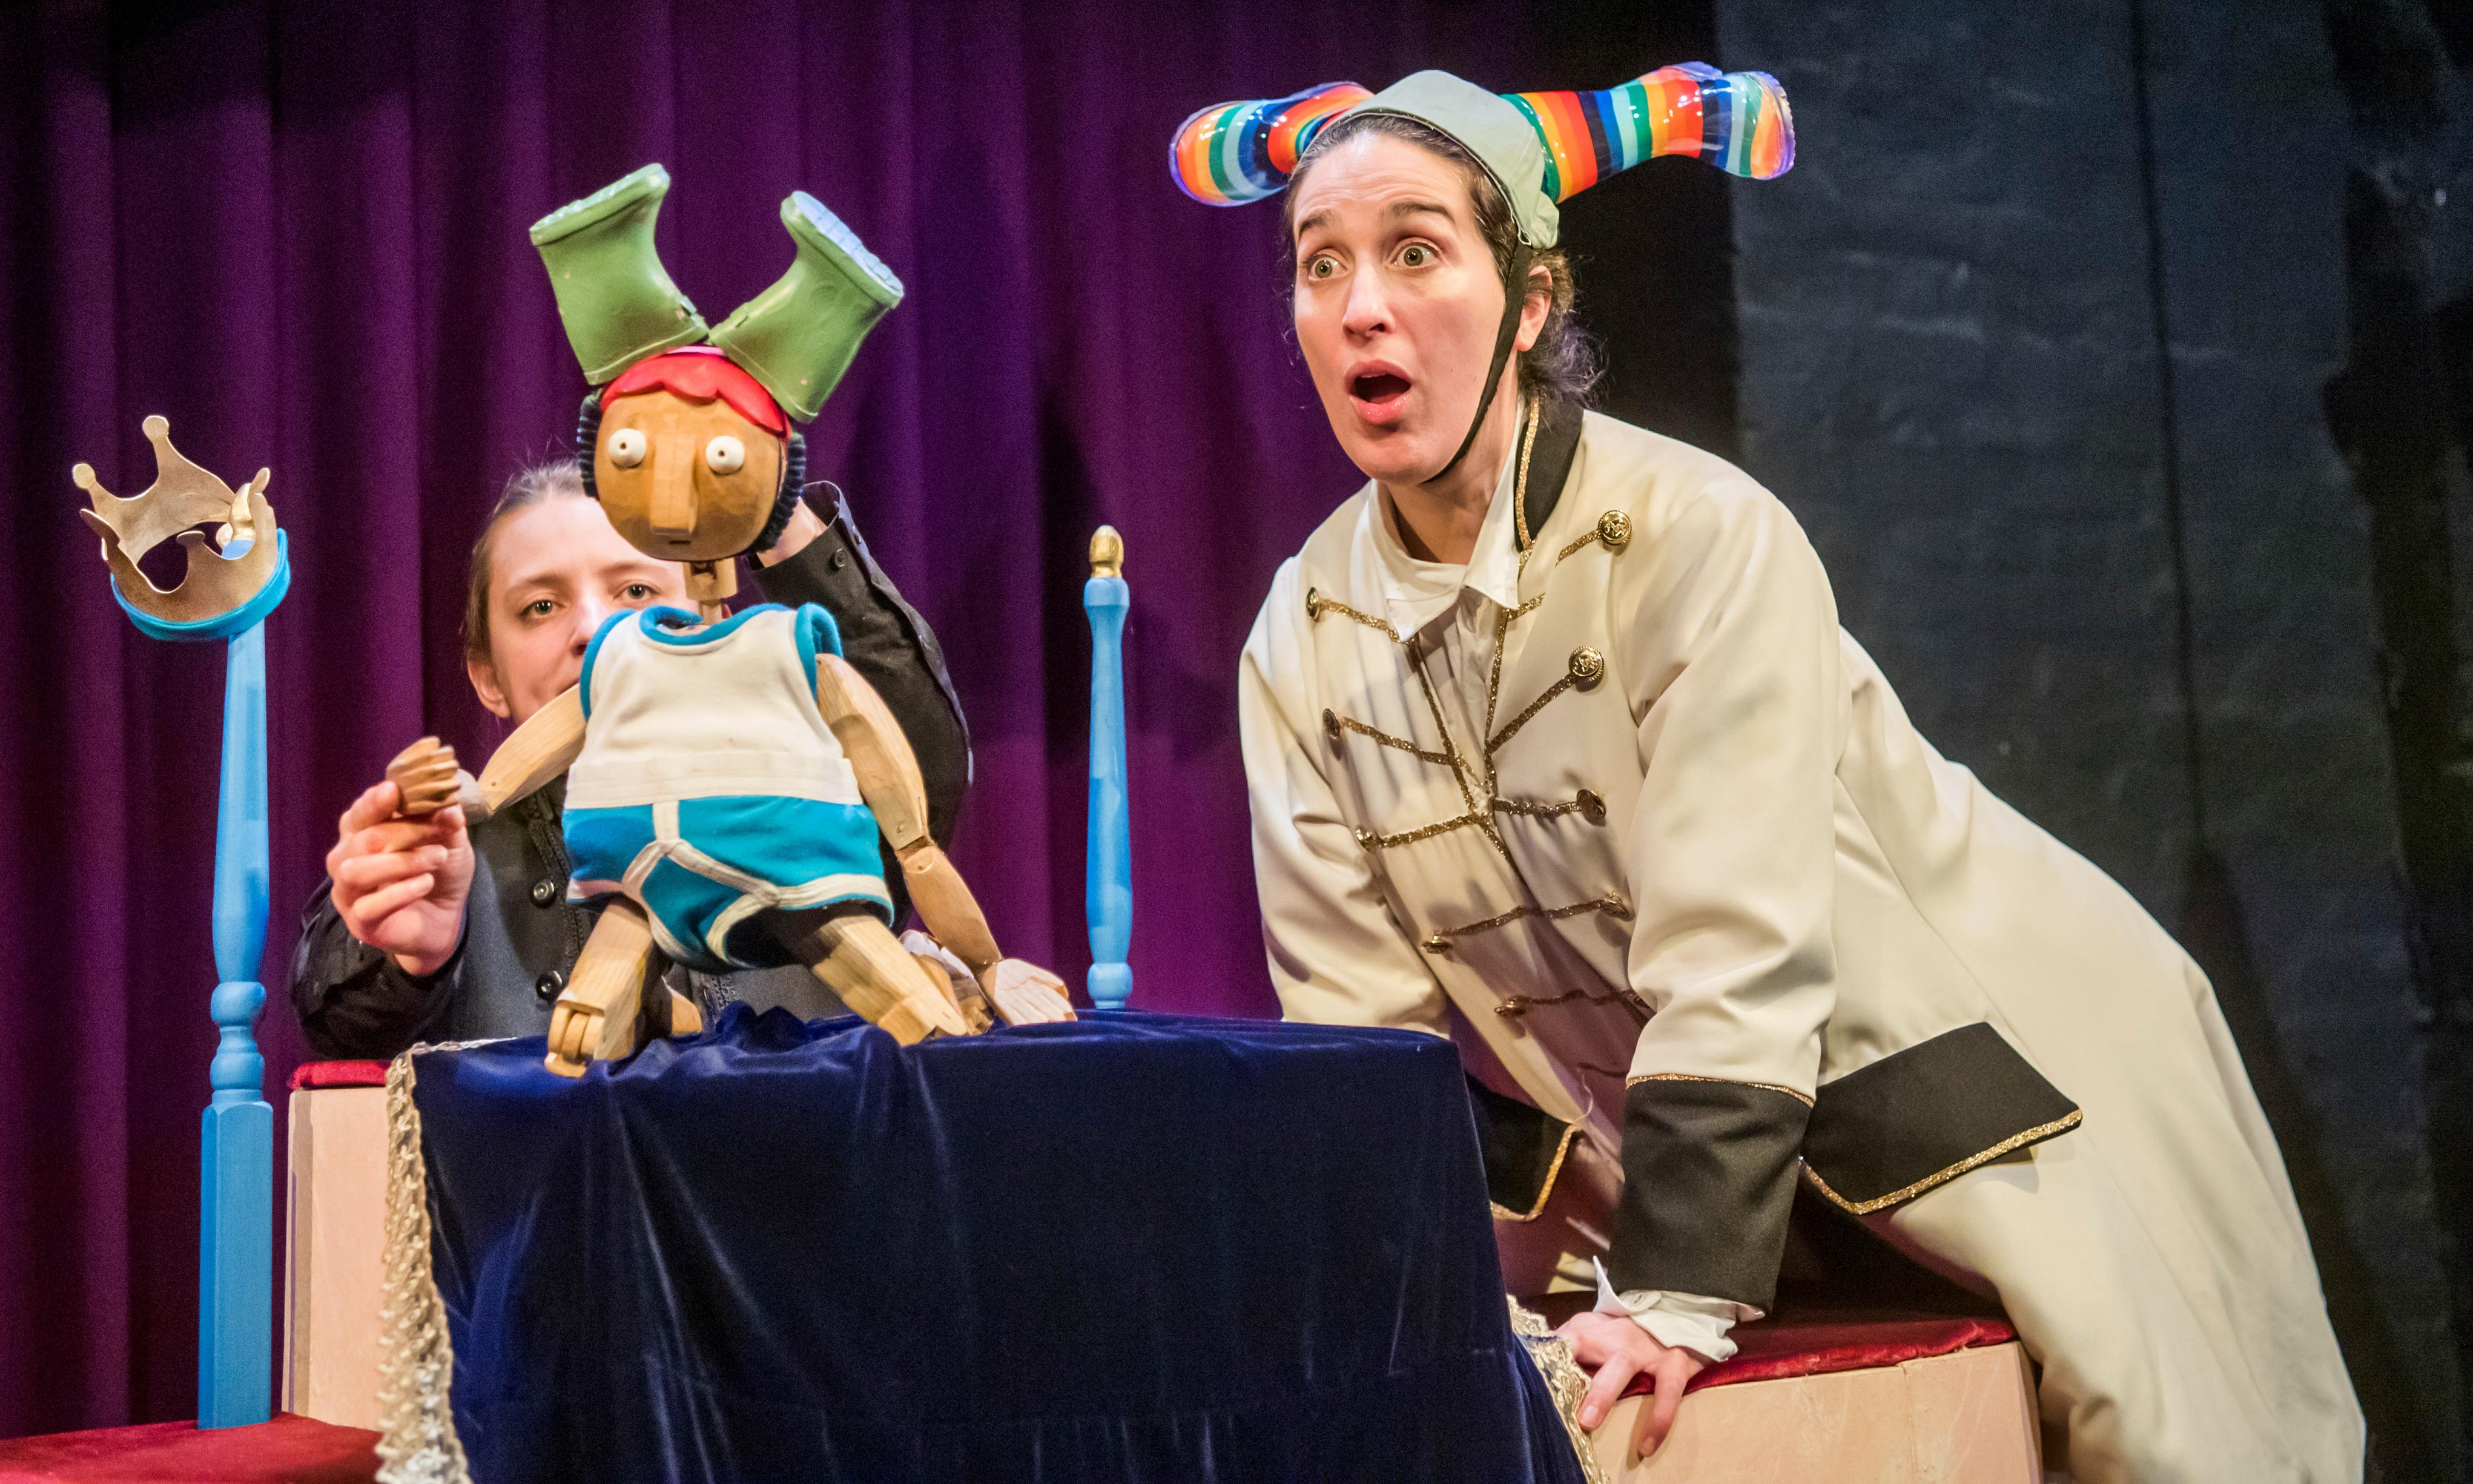 Prince Charming review – enthralling, gloriously offbeat fantasy